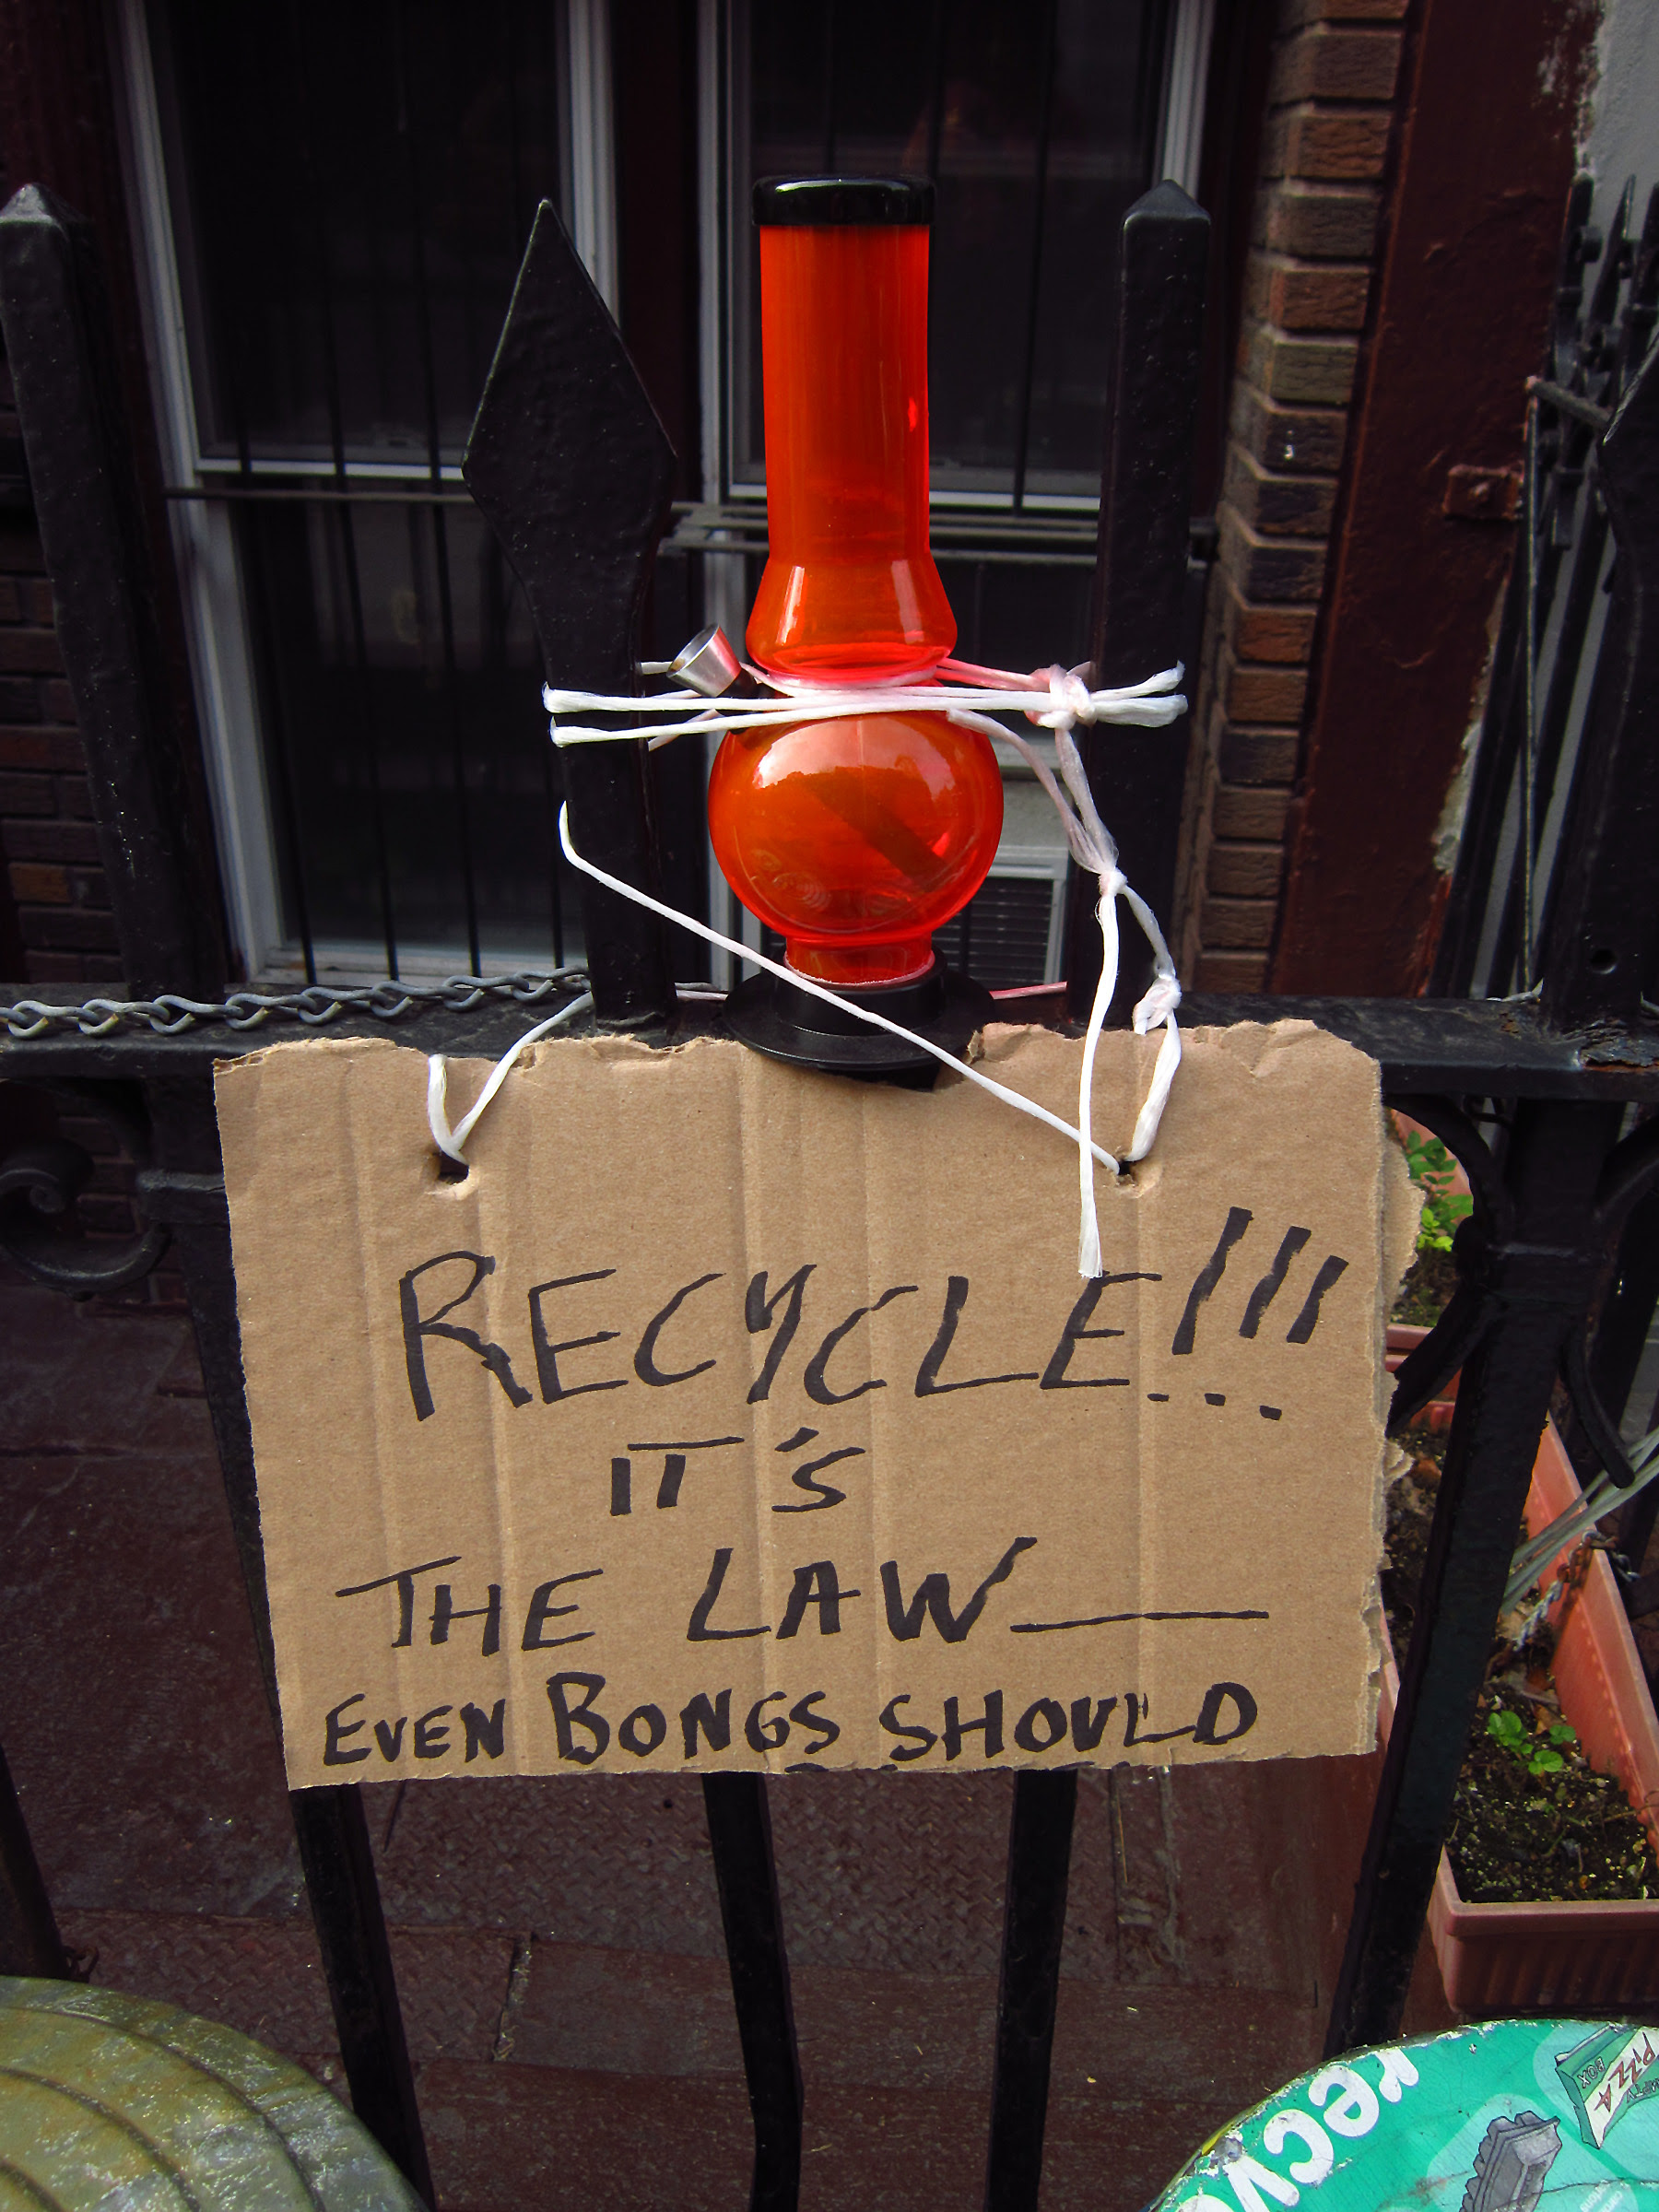 Recycle your bongs